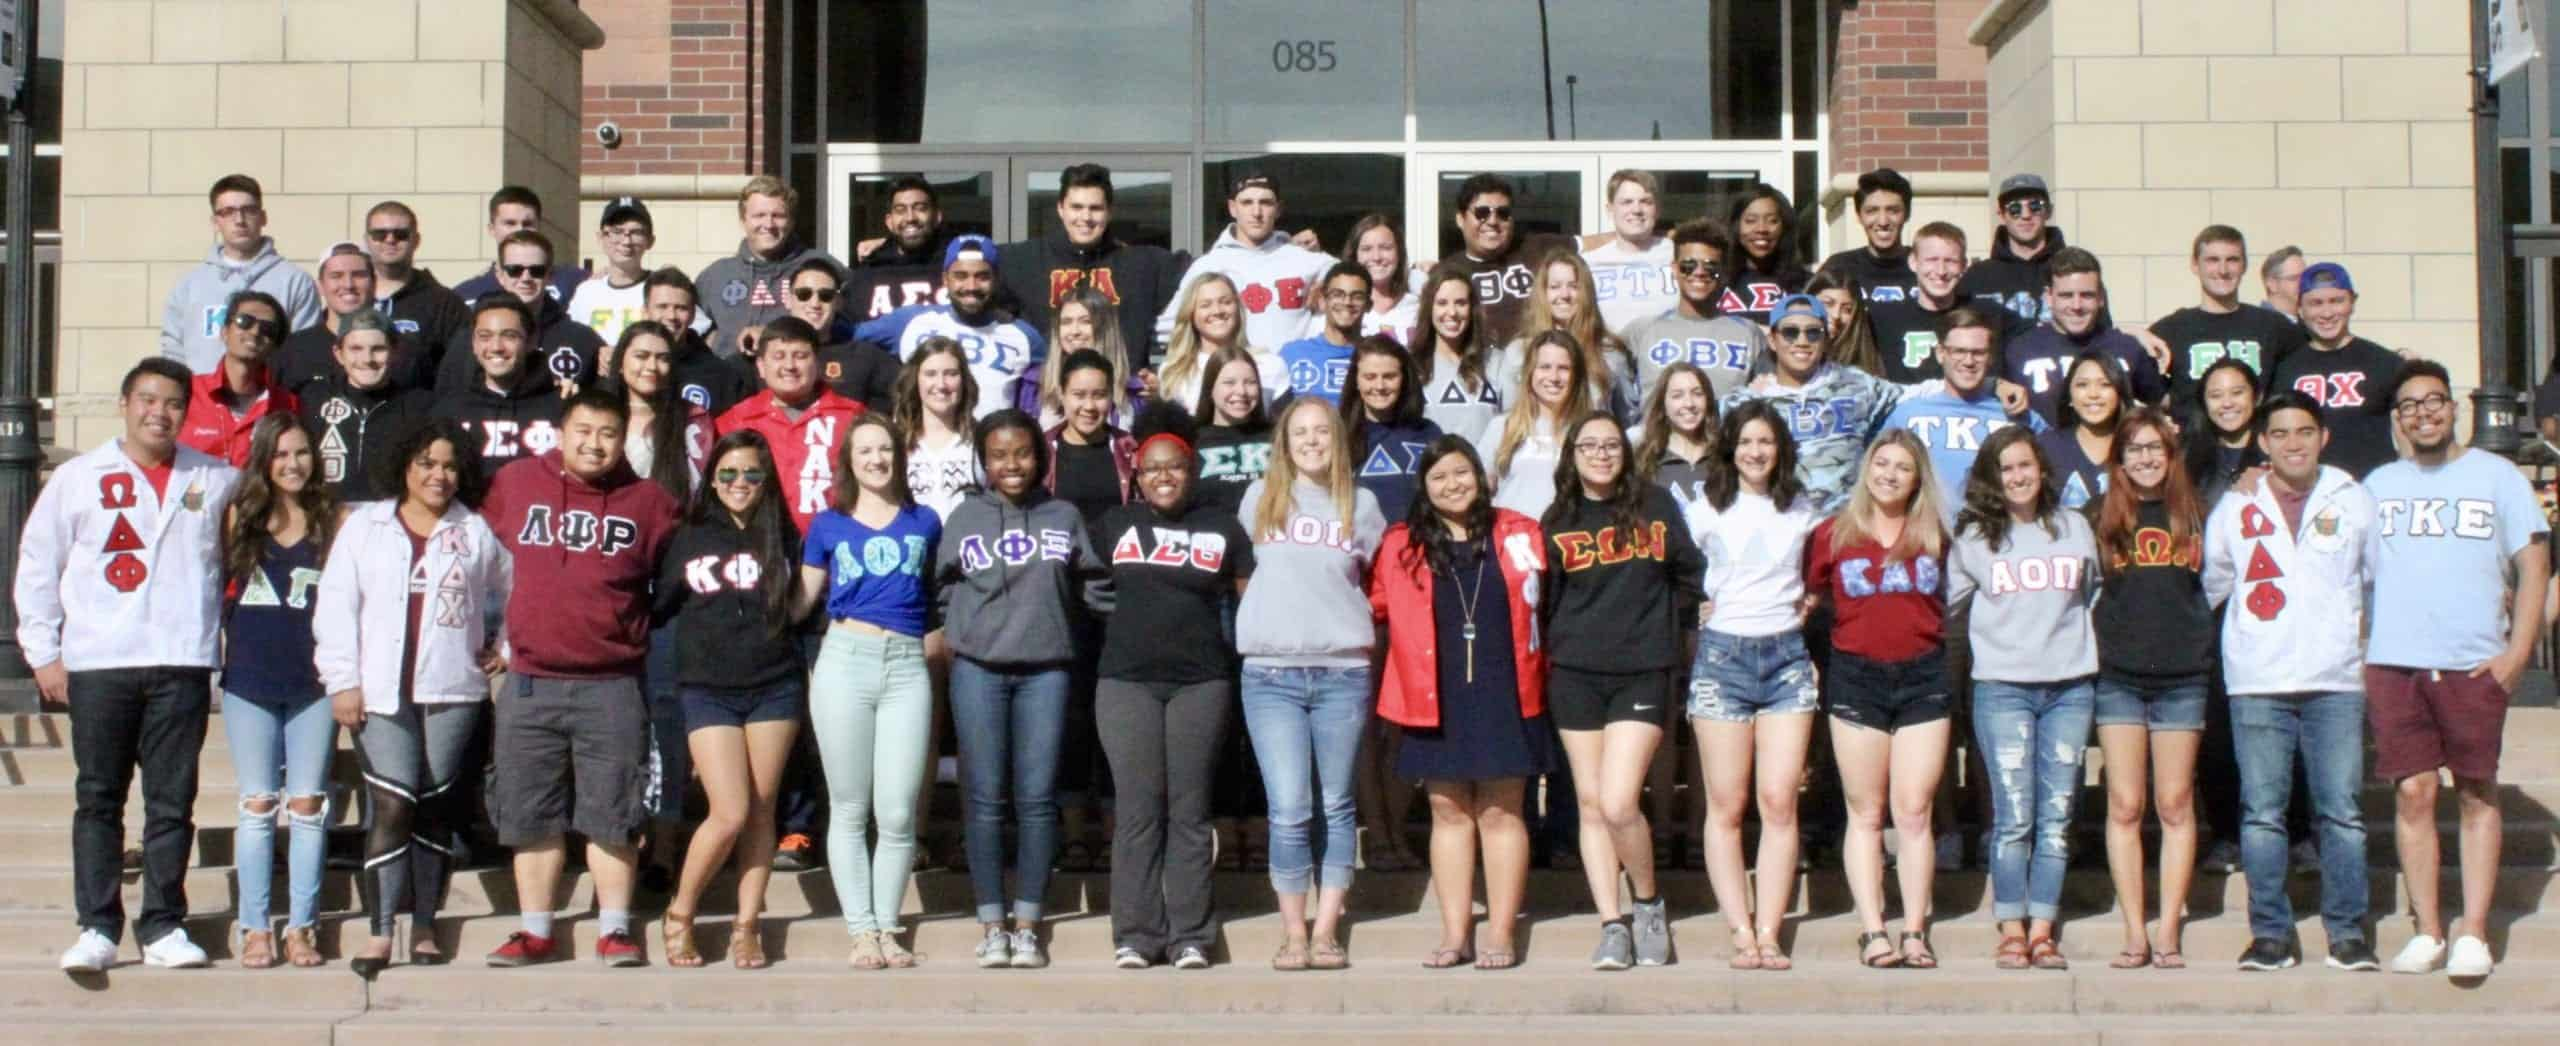 fraternities and sororities and fraternity Friendship - fraternities and sororities provide a sense of brotherhood and sisterhood through retreats, social interactions, programming with other chapters and campus entities, parent events, alumni activities, and continued practice of ritual.